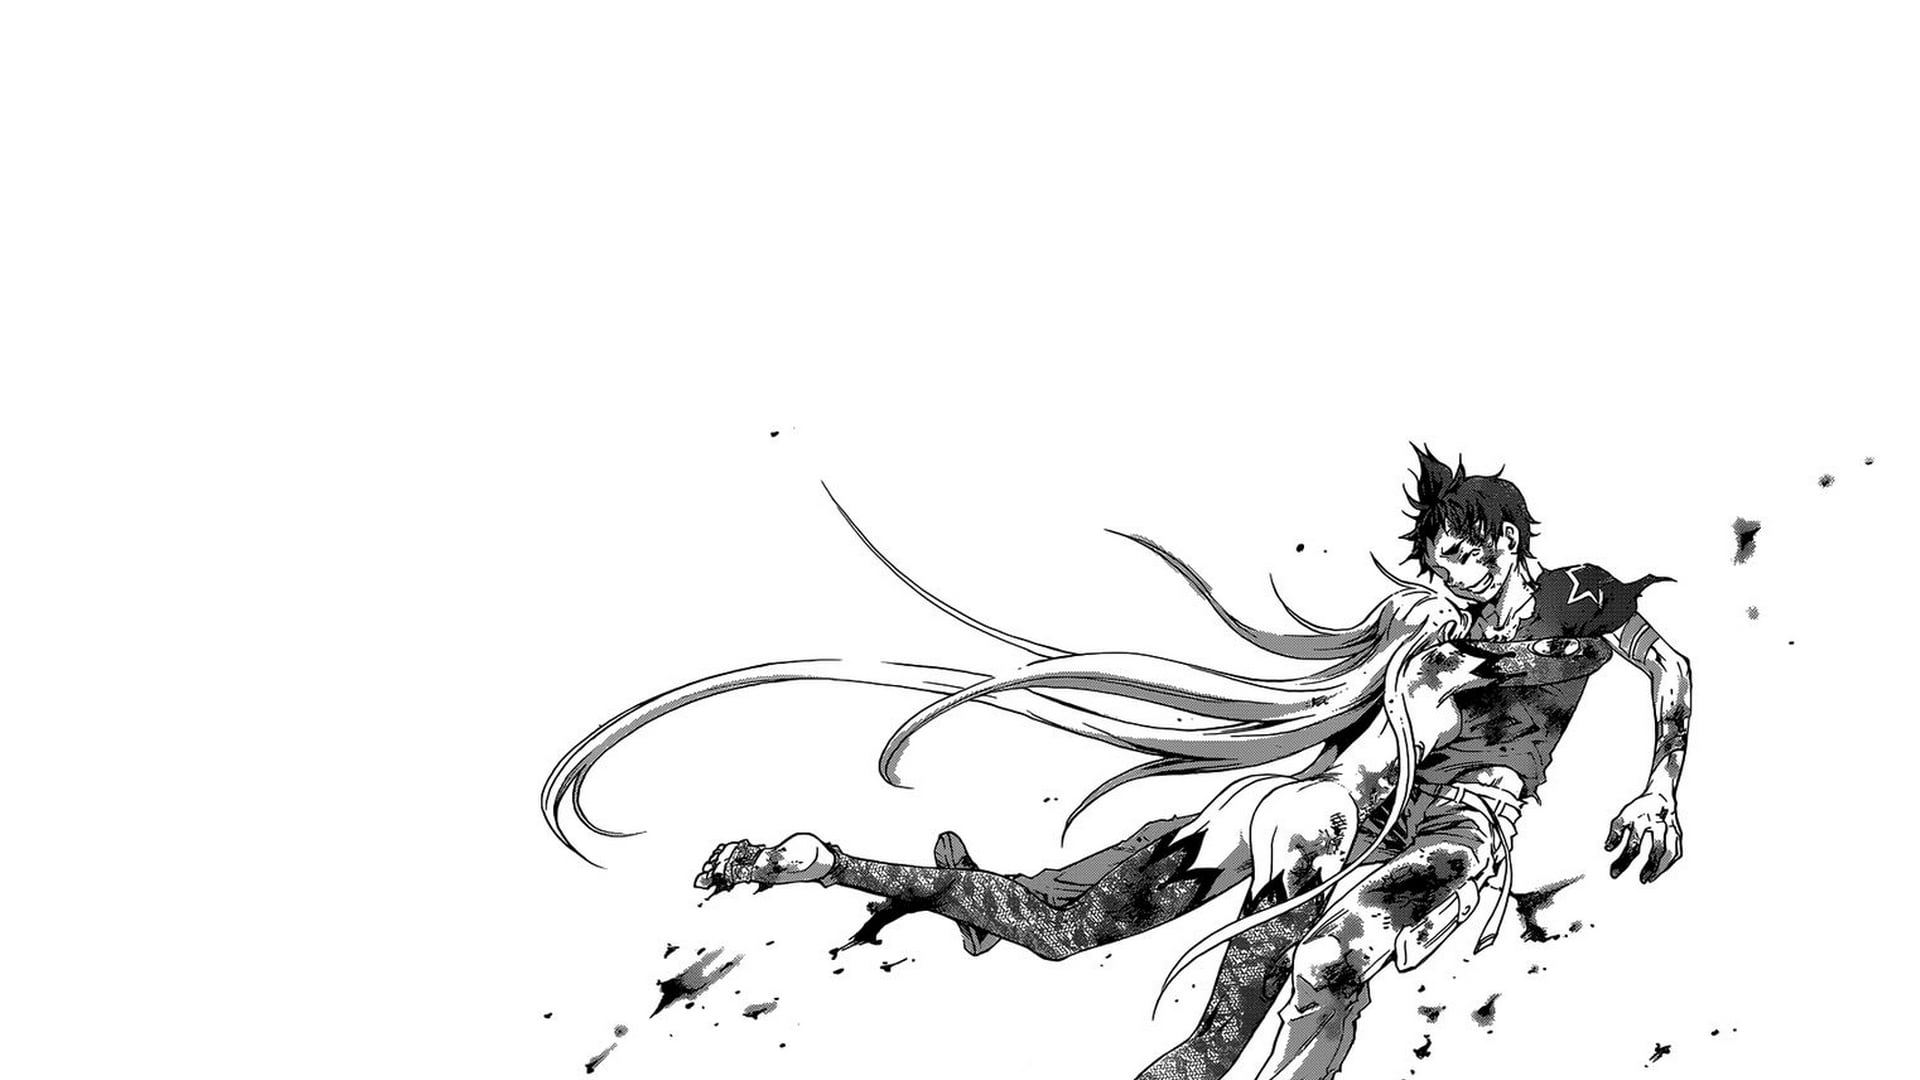 Deadman Wonderland Illustration Manga Monochrome